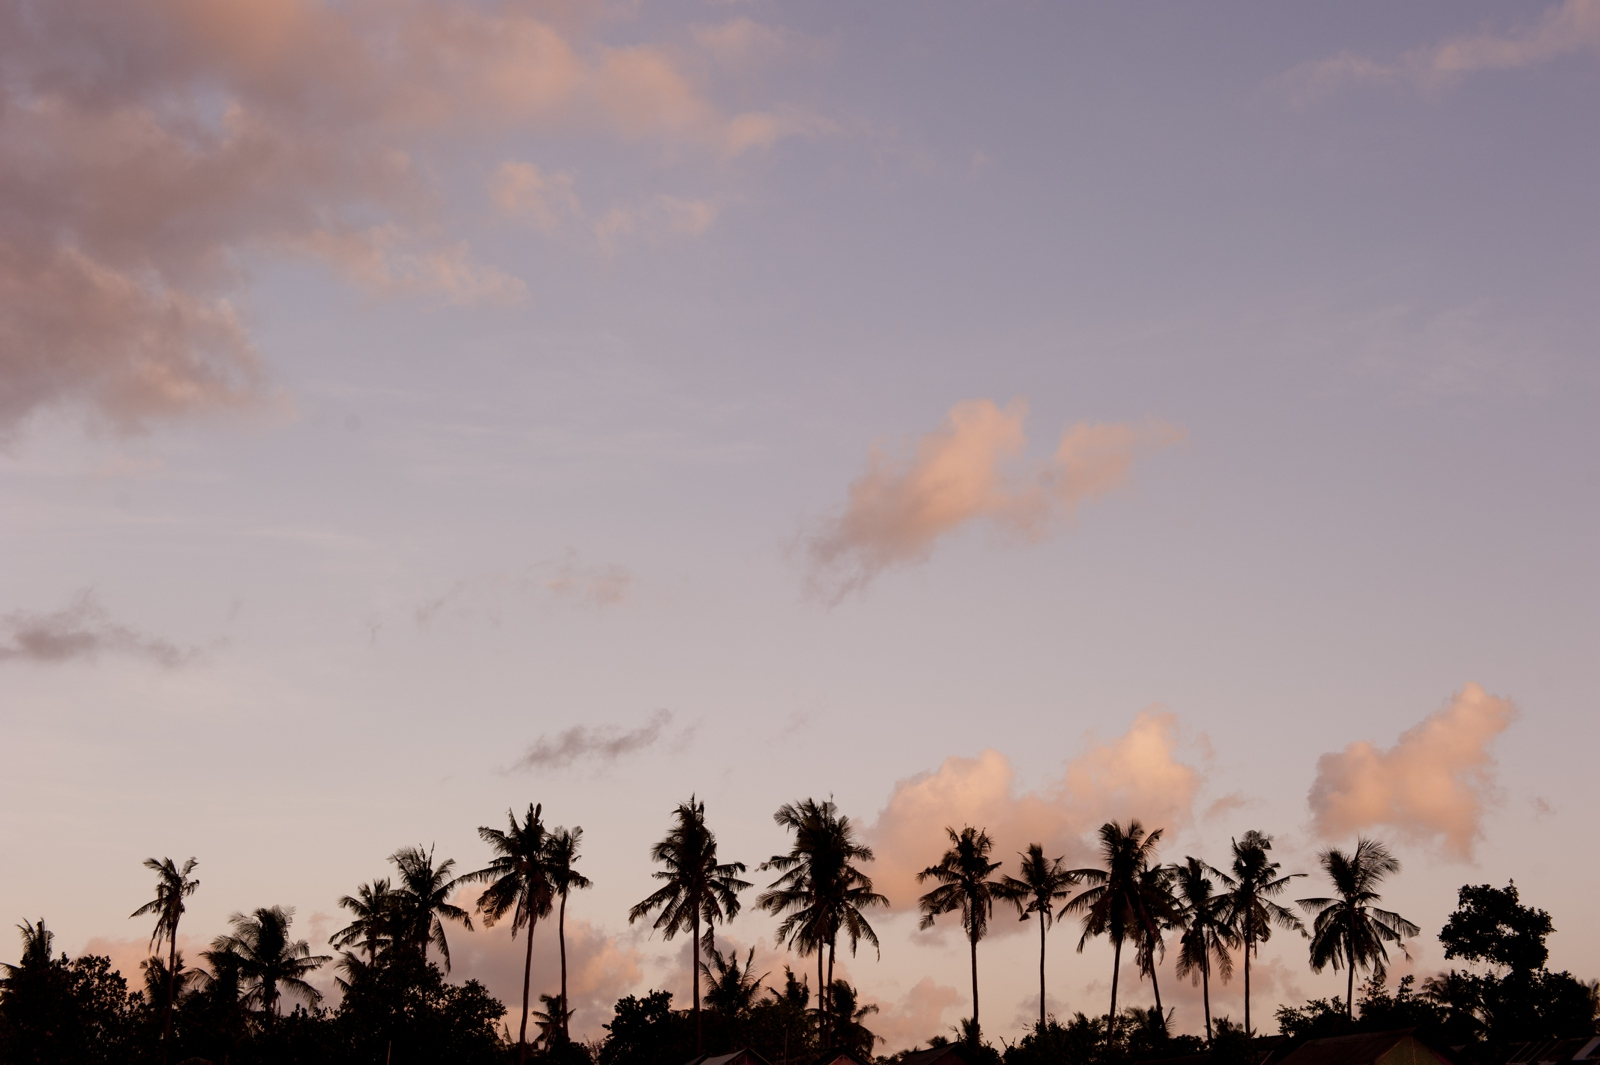 Coco nut trees at sunset